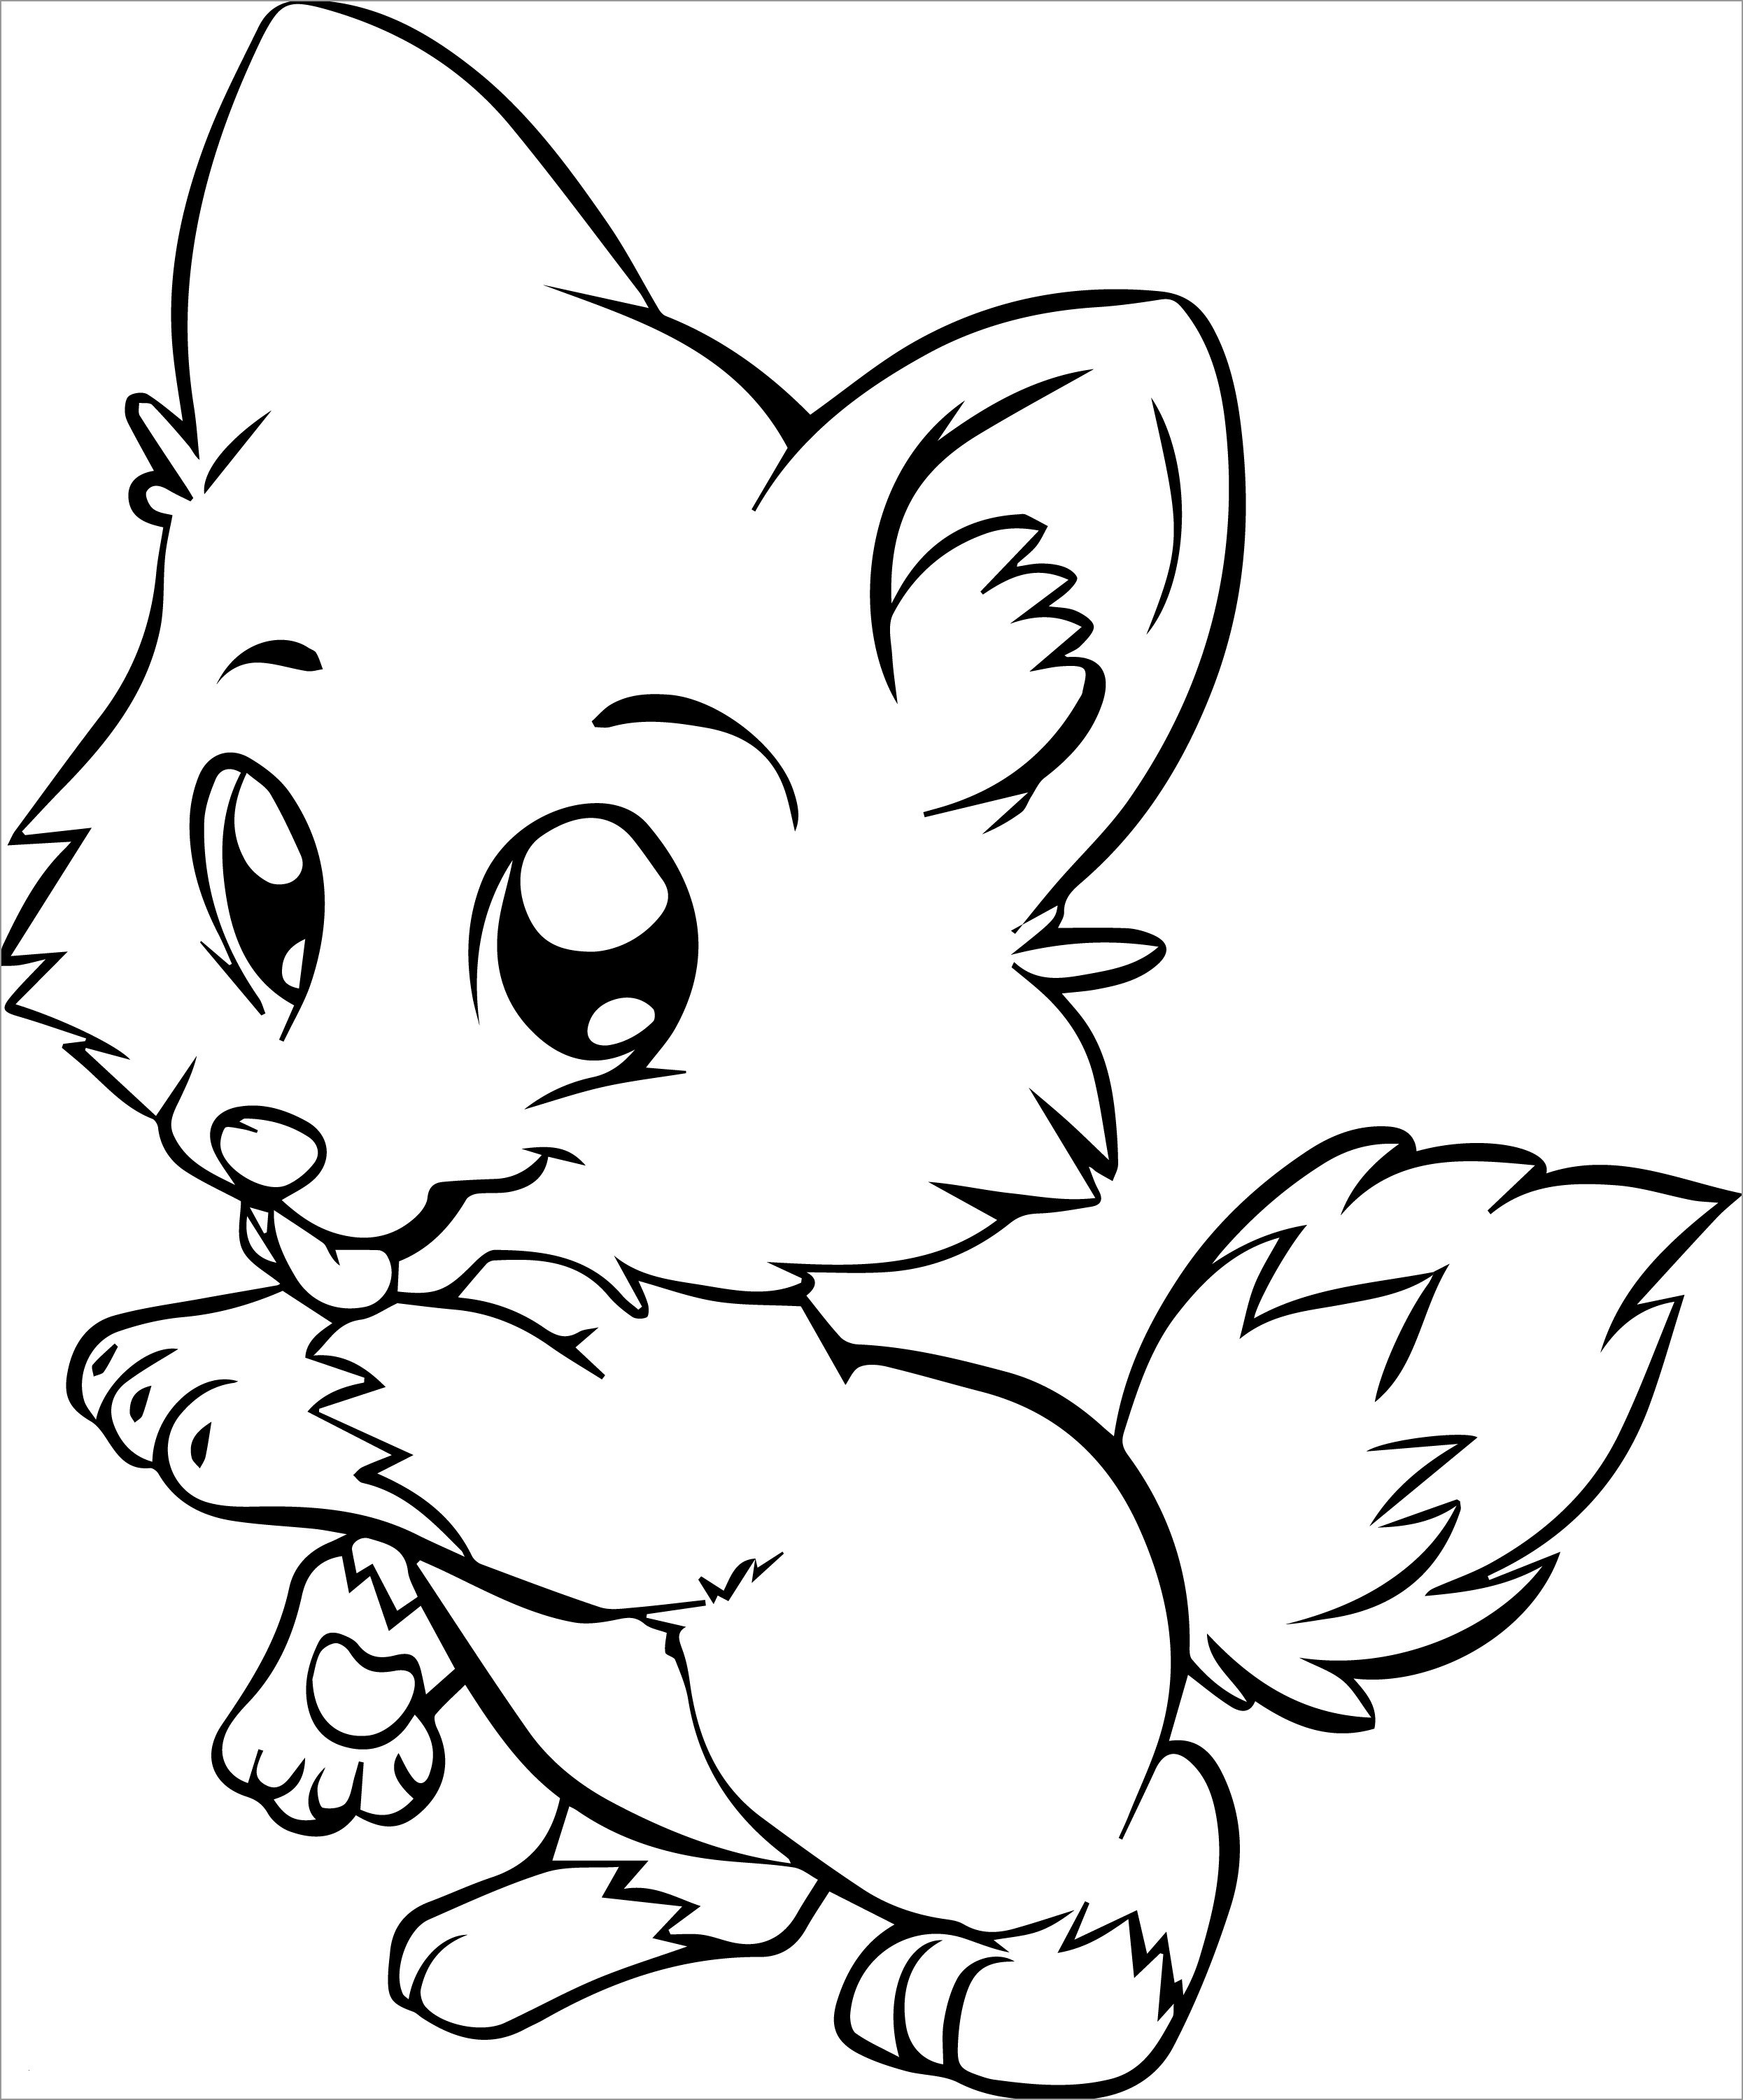 coloring the animal animal coloring pages free coloring pages printable for coloring the animal